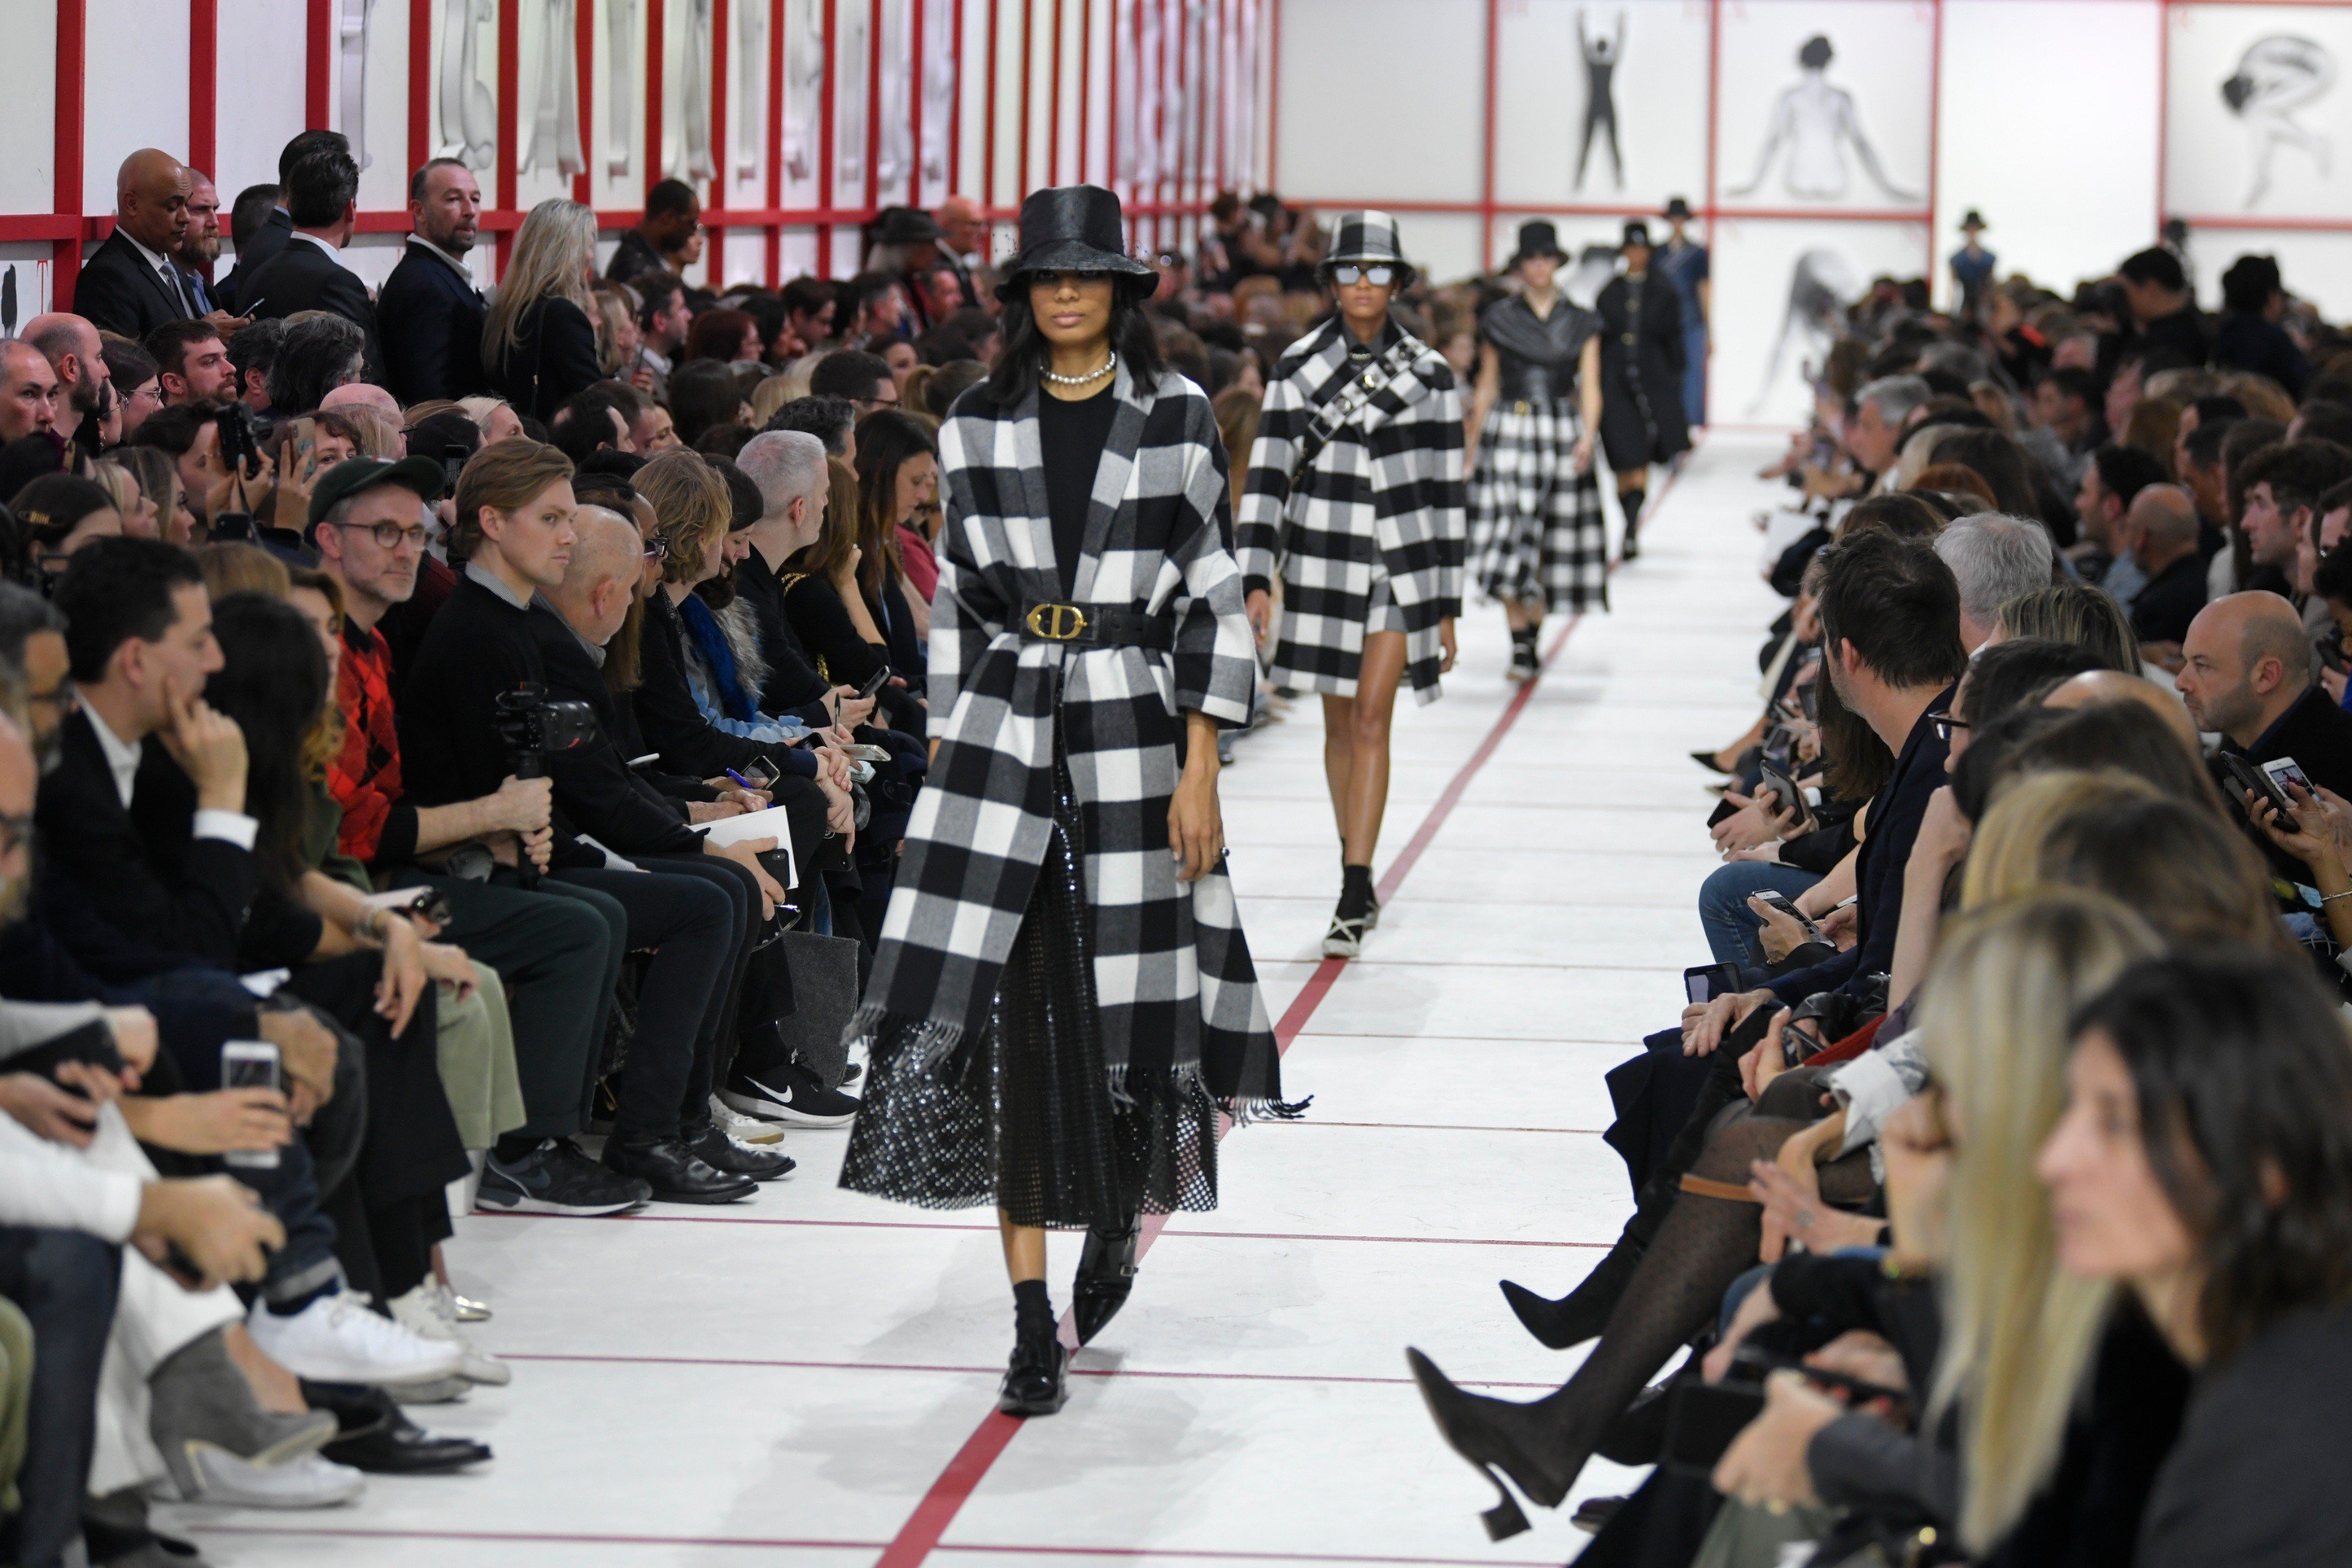 bd4fe44fcb740f Paris Fashion Week  the 5 biggest trends from the runway